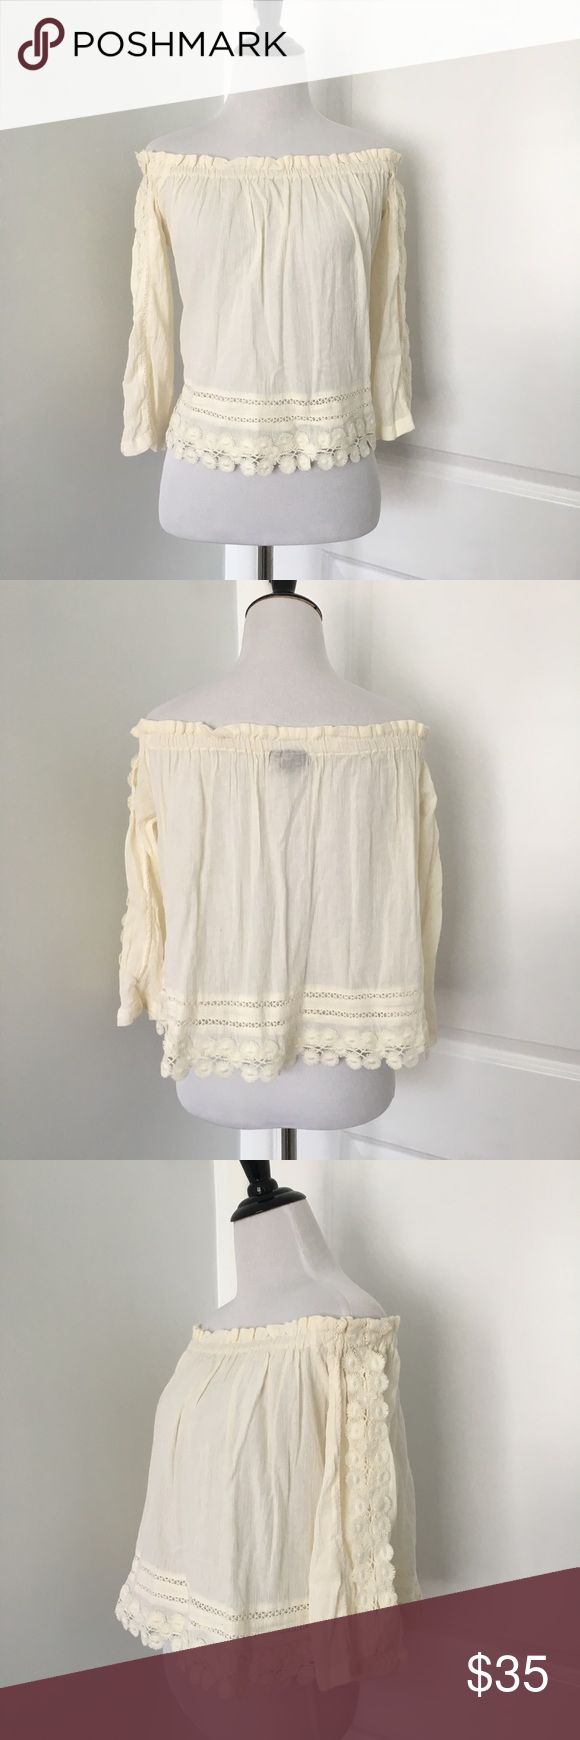 Topshop Bardot Top Super cute cream colored off the shoulder Bardot top with lace. Slightly cropped Brand new, Never worn but does not have tags  Size 6 Topshop Tops Blouses